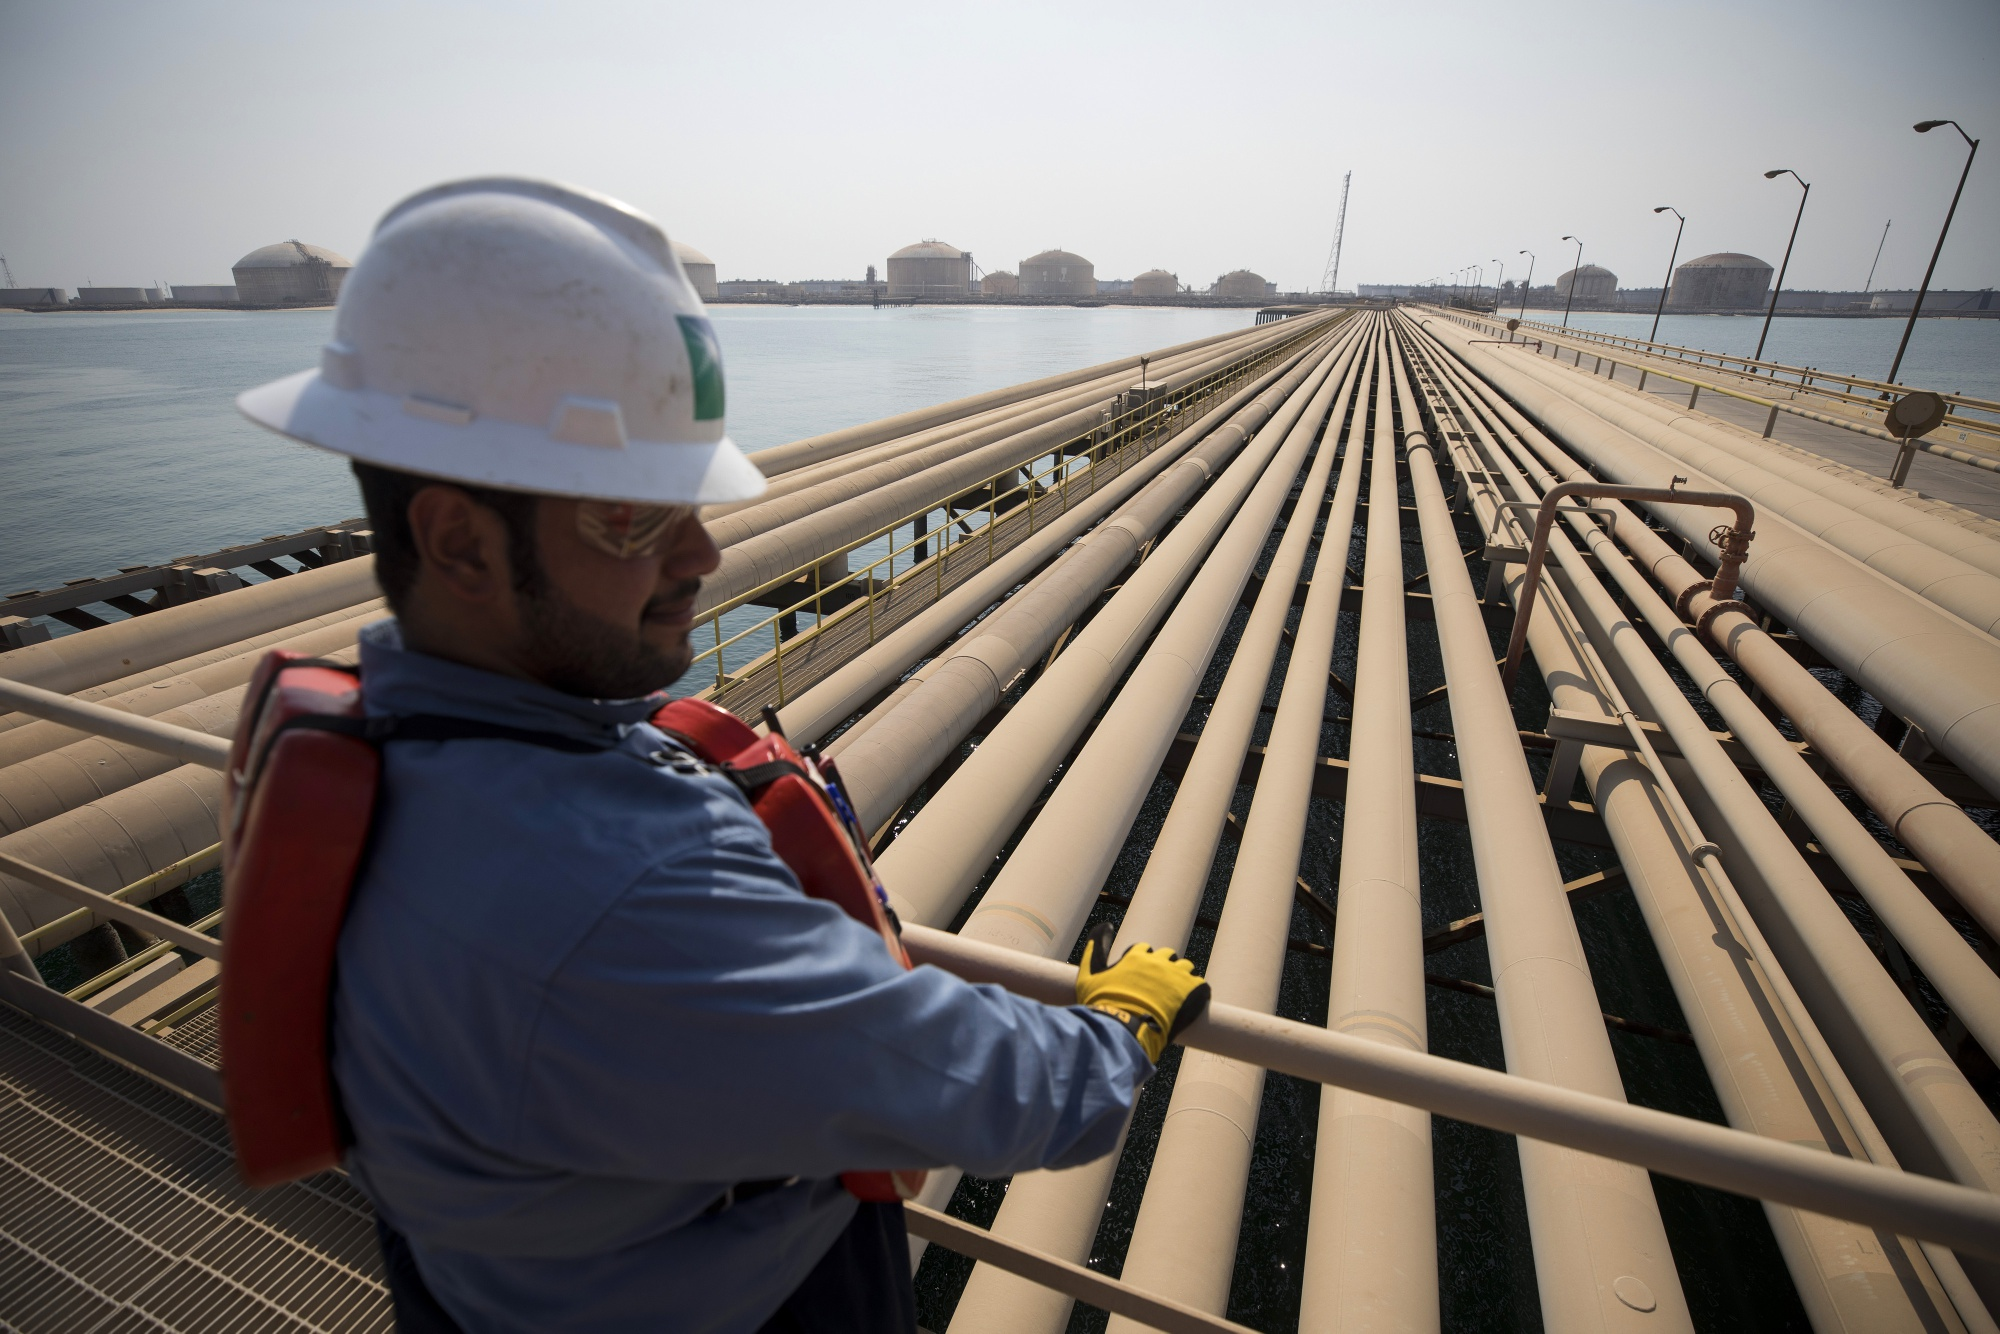 An employee looks out over oil transport pipelines on the Arabian Sea in Saudi Aramco's Ras Tanura oil refinery and oil terminal in Ras Tanura, Saudi Arabia. Photographer: Simon Dawson/Bloomberg